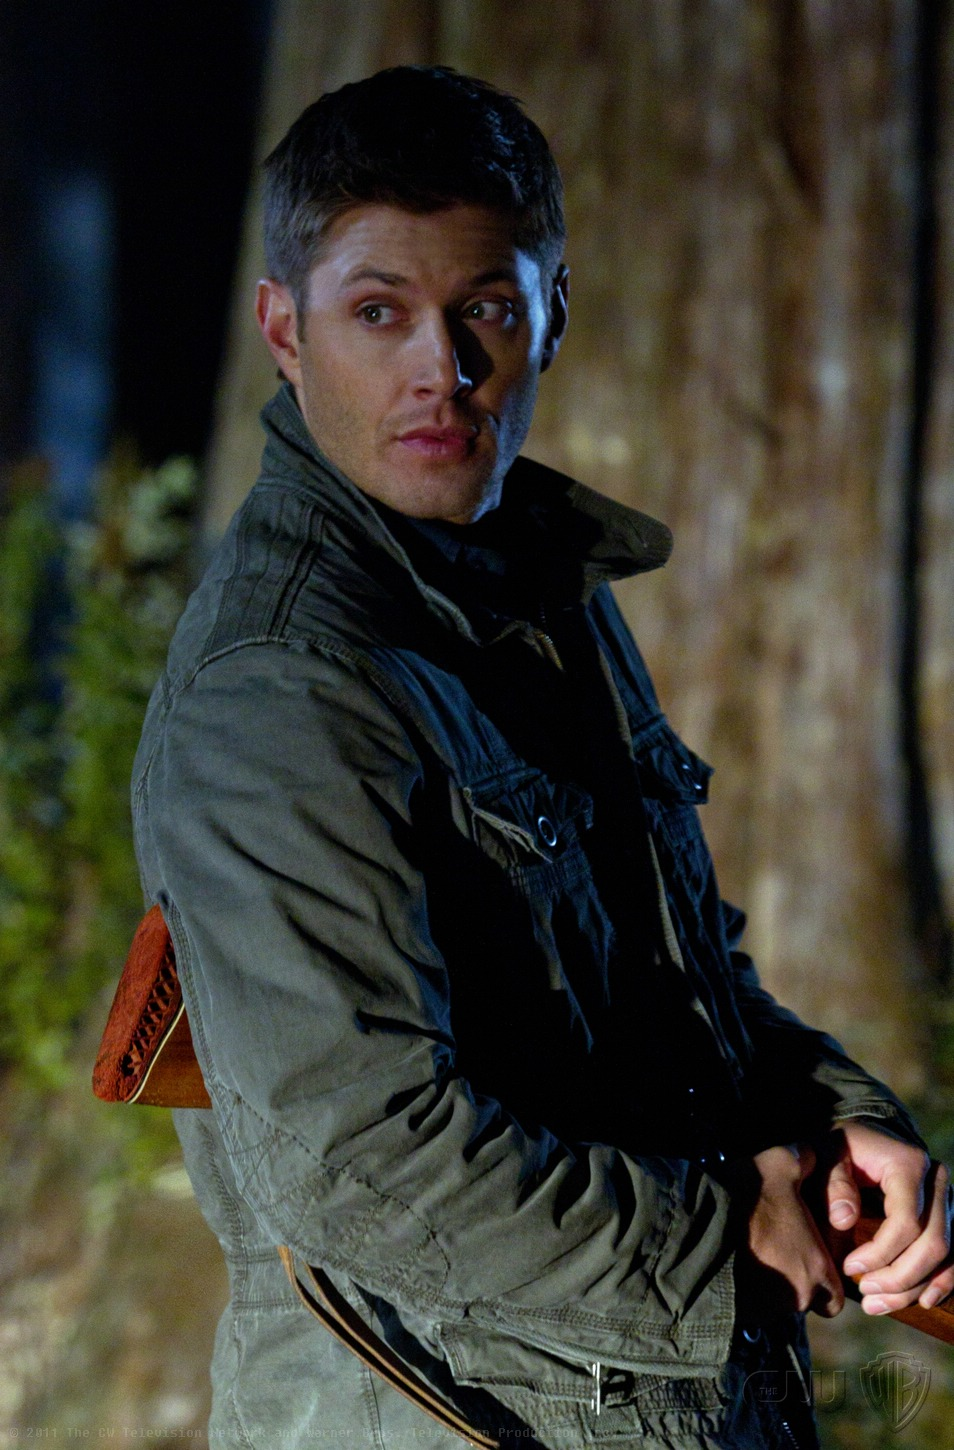 http://images.wikia.com/supernatural/images/8/8a/709-Dean-Winchester.jpg